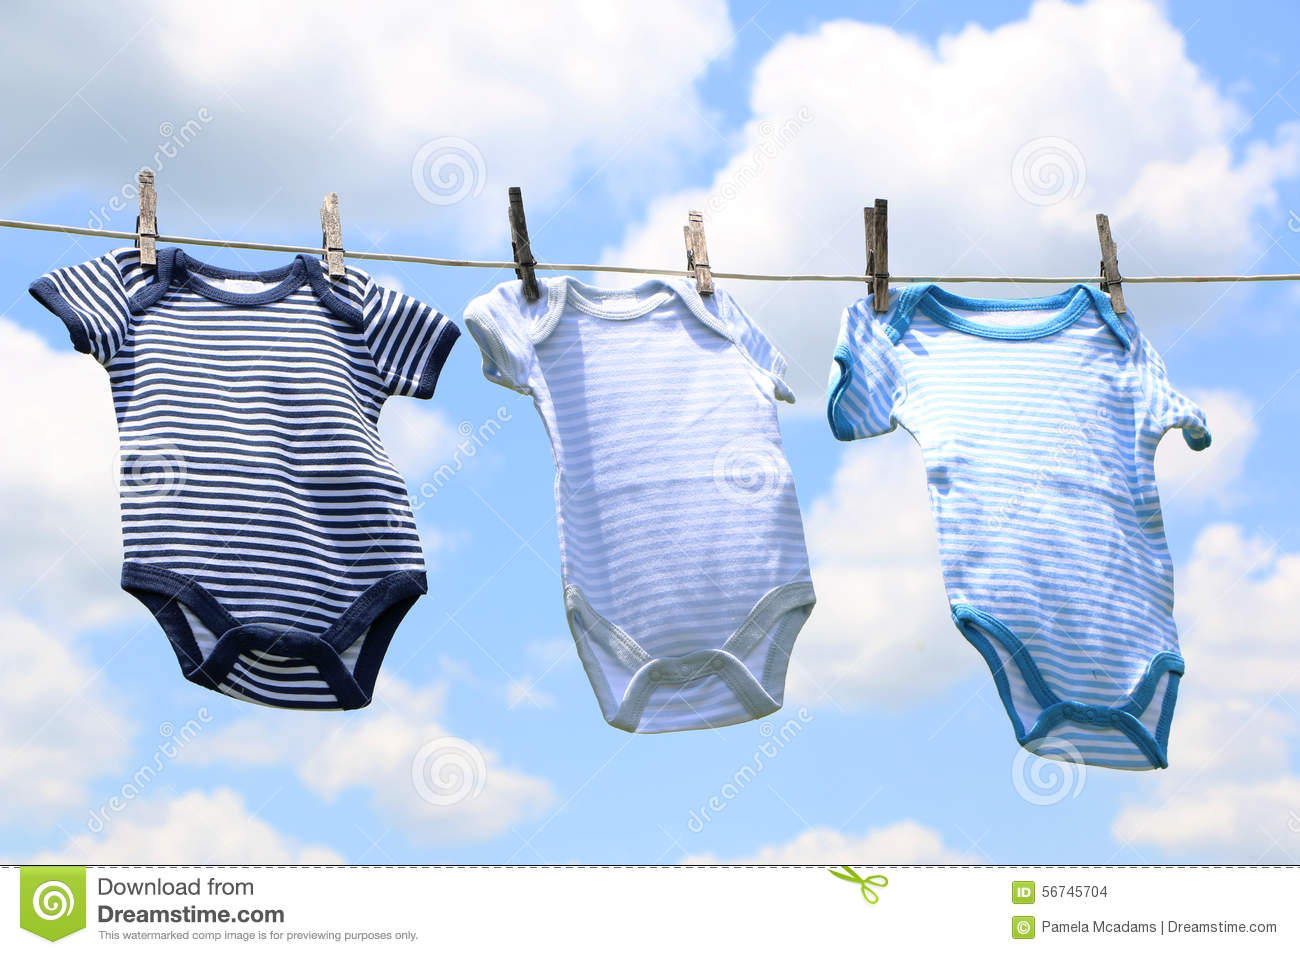 Baby Clothes on a Line stock photo. Image of blue, green - 8